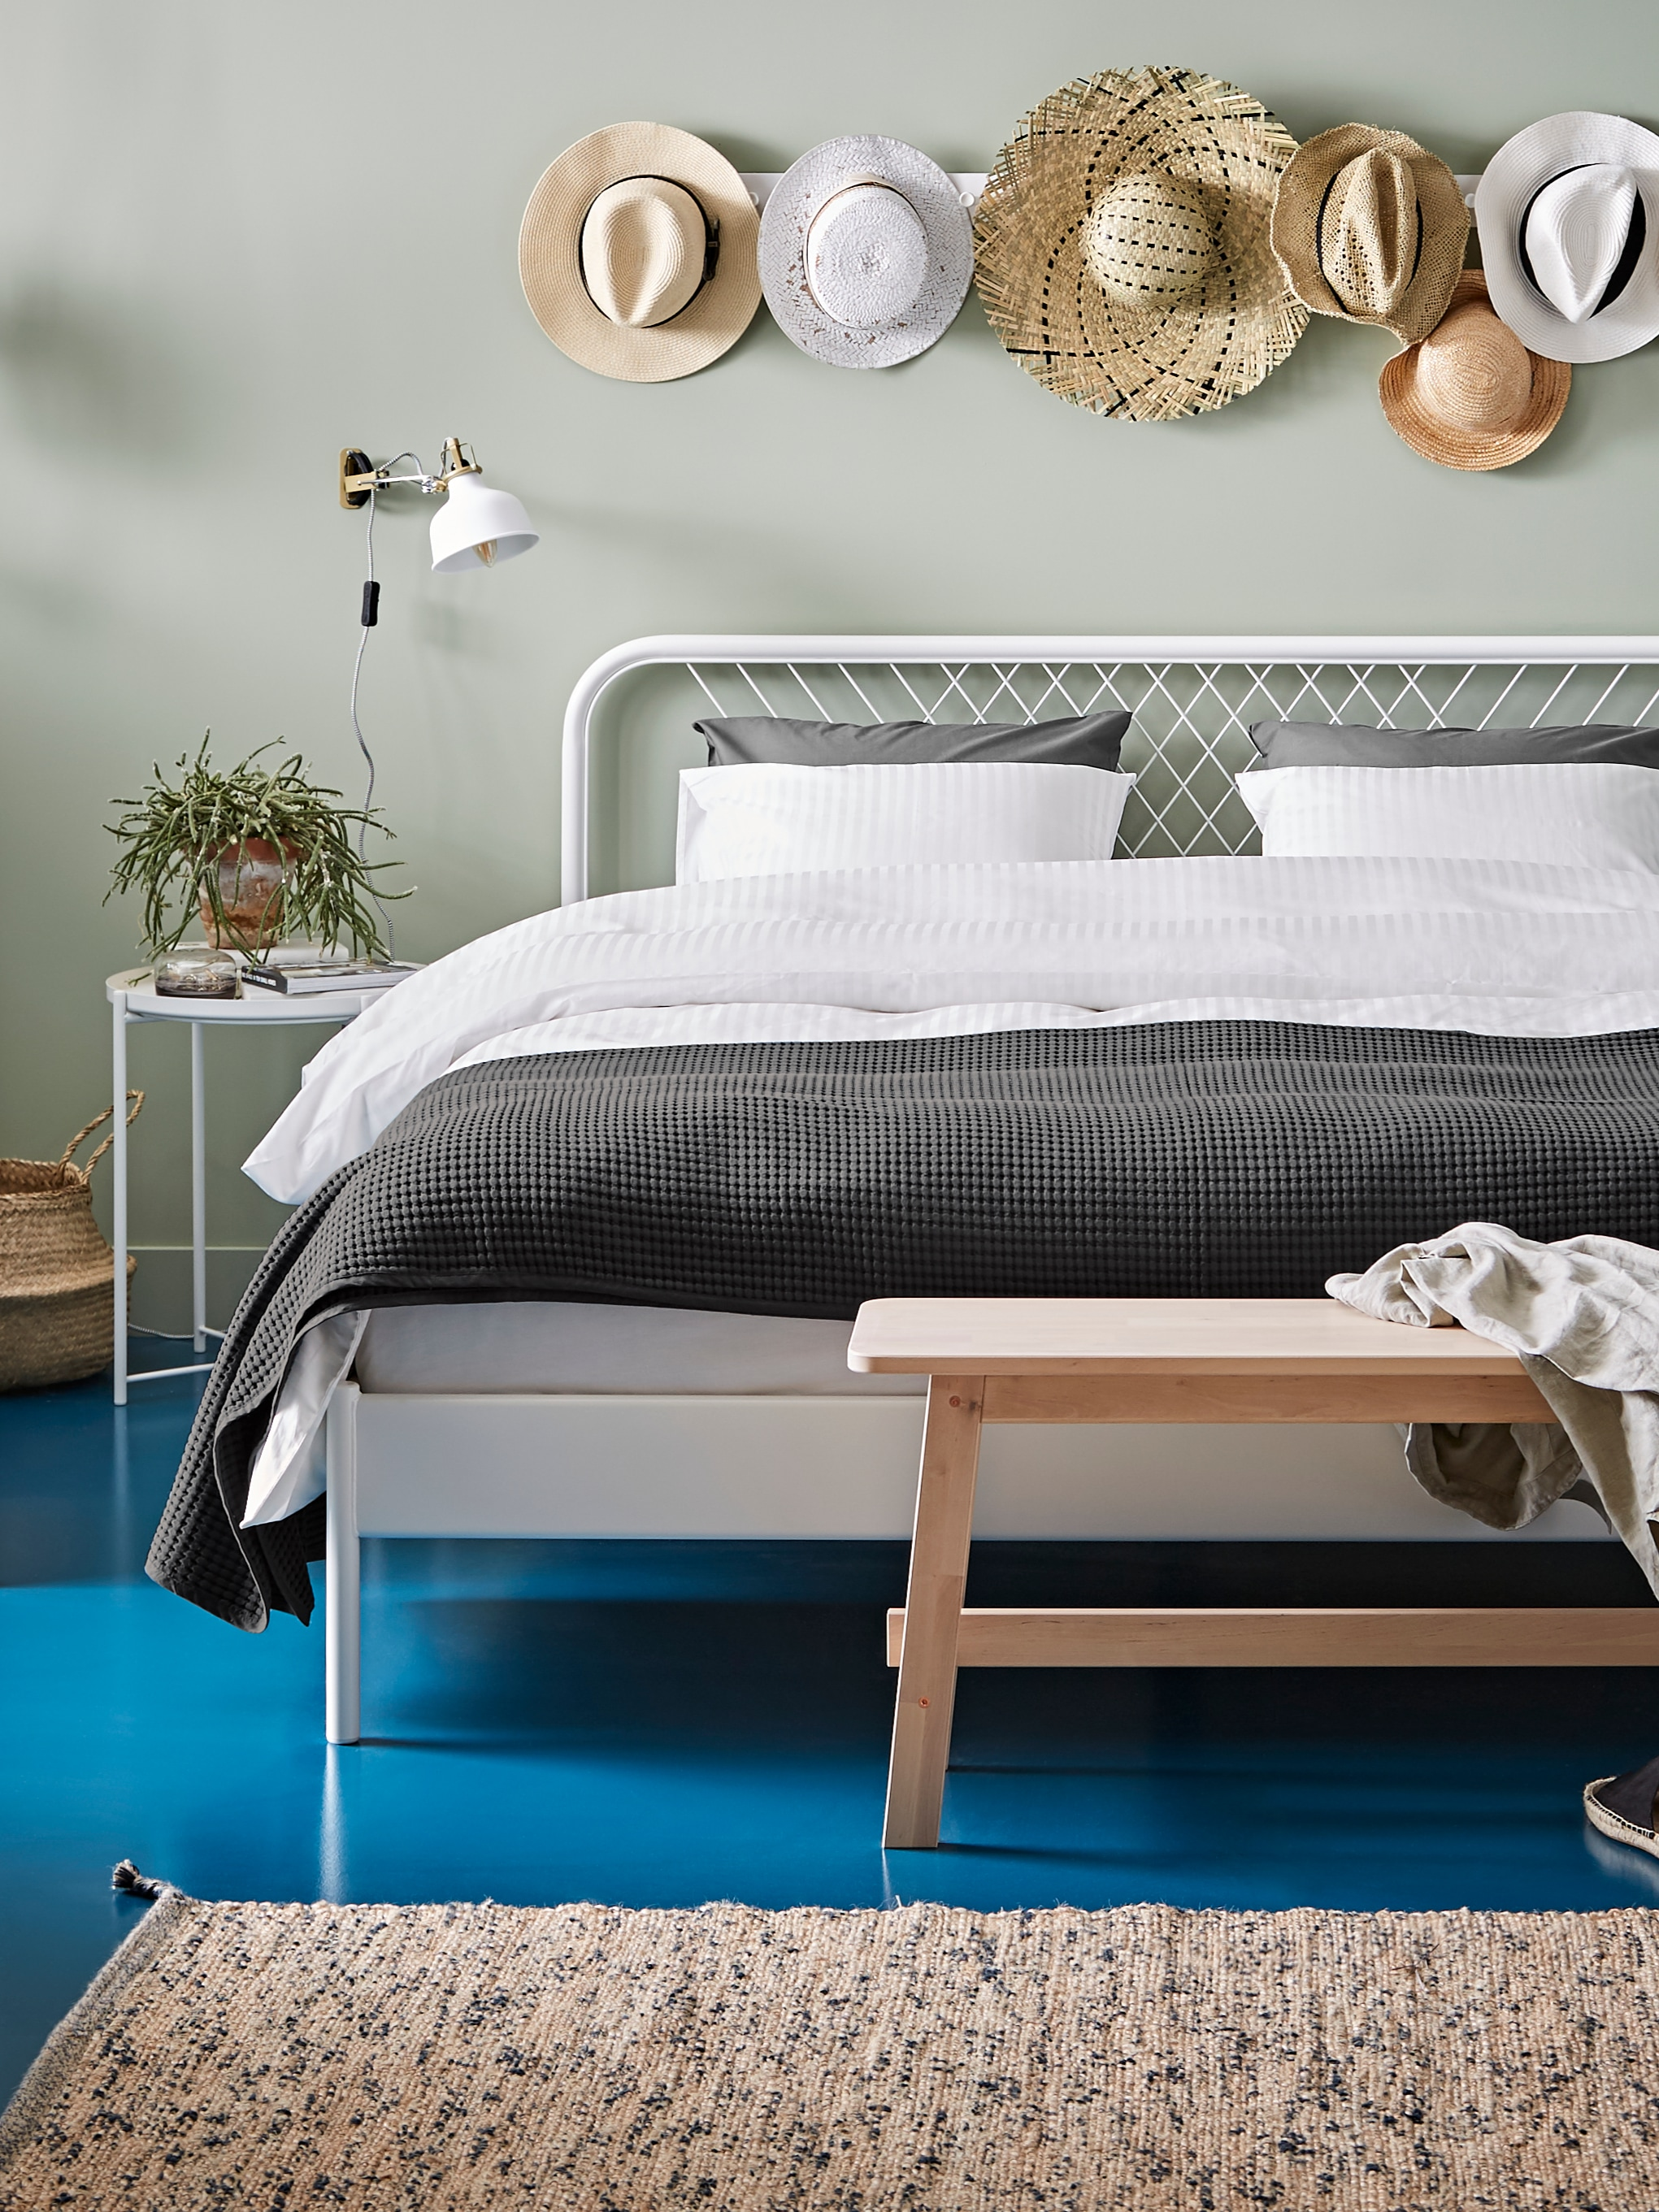 A NESTTUN white bed frame with a white quilt cover and dark grey bedspread on a blue bedroom floor next to white tray tables.